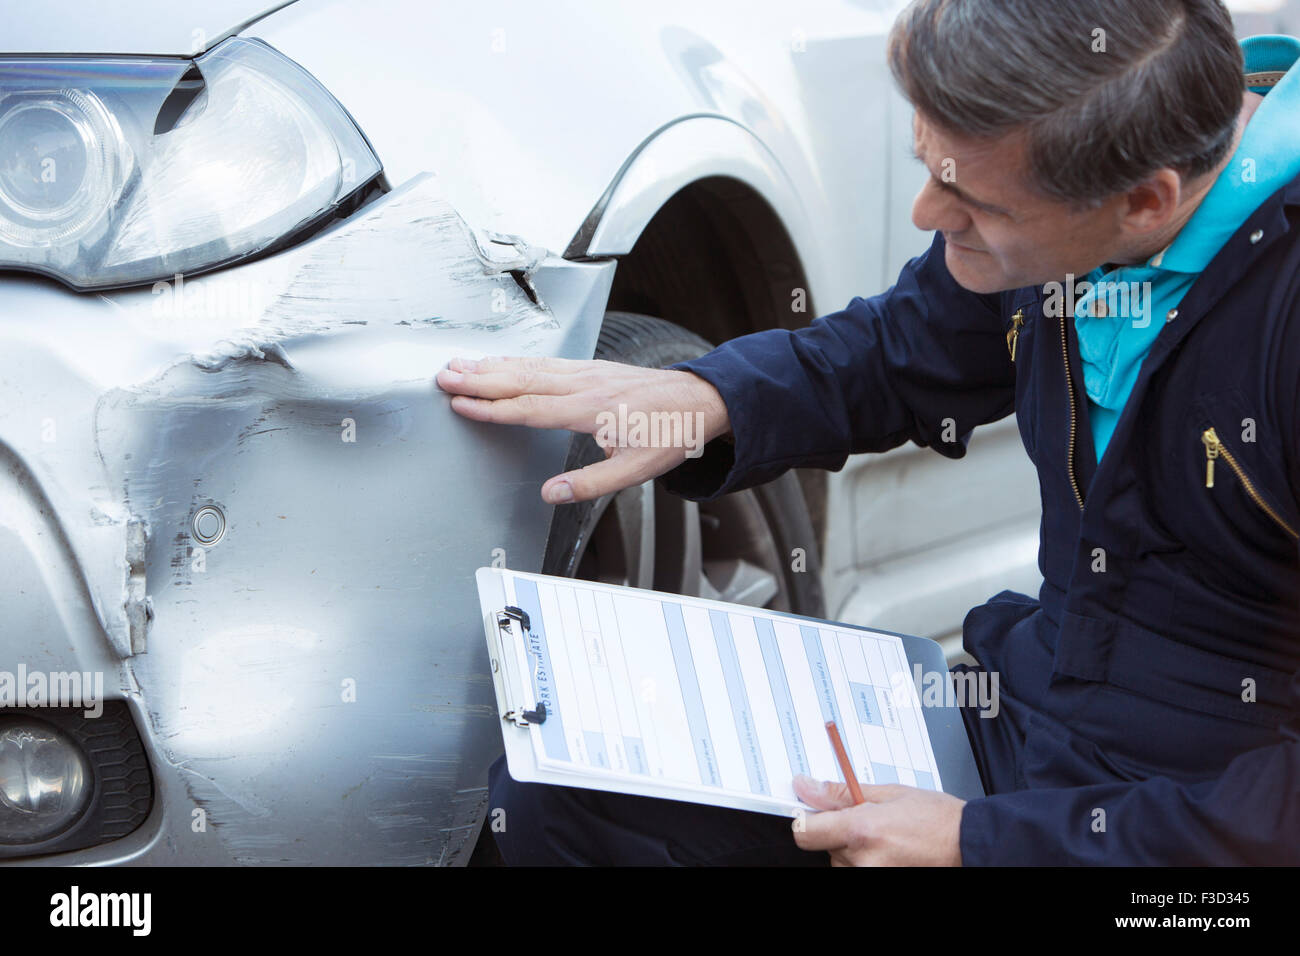 Auto Workshop Mechanic Inspecting Damage To Car And Filling In Repair Estimate - Stock Image